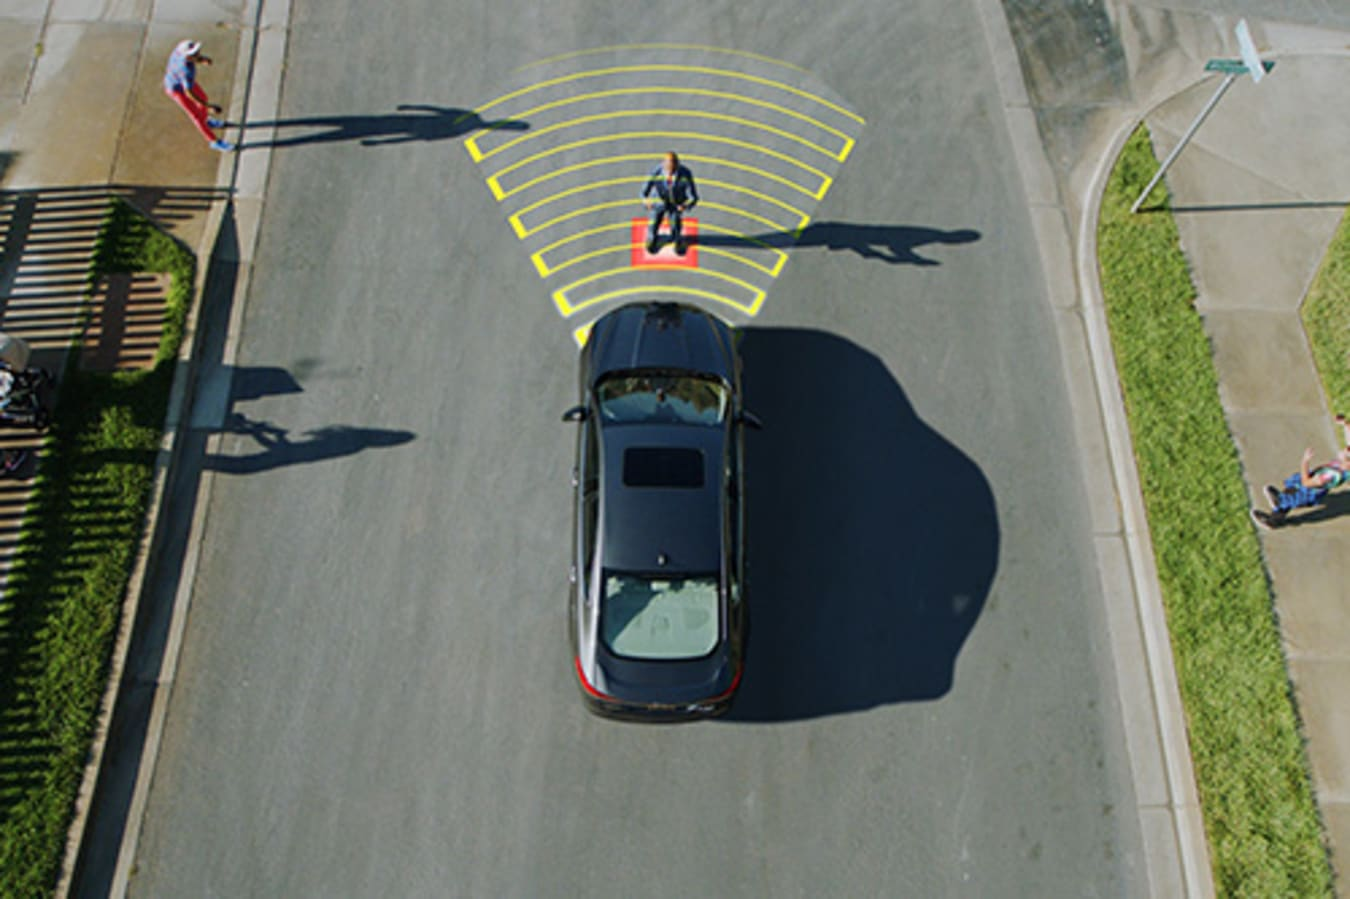 Ford's AEB Pedestrian Detection